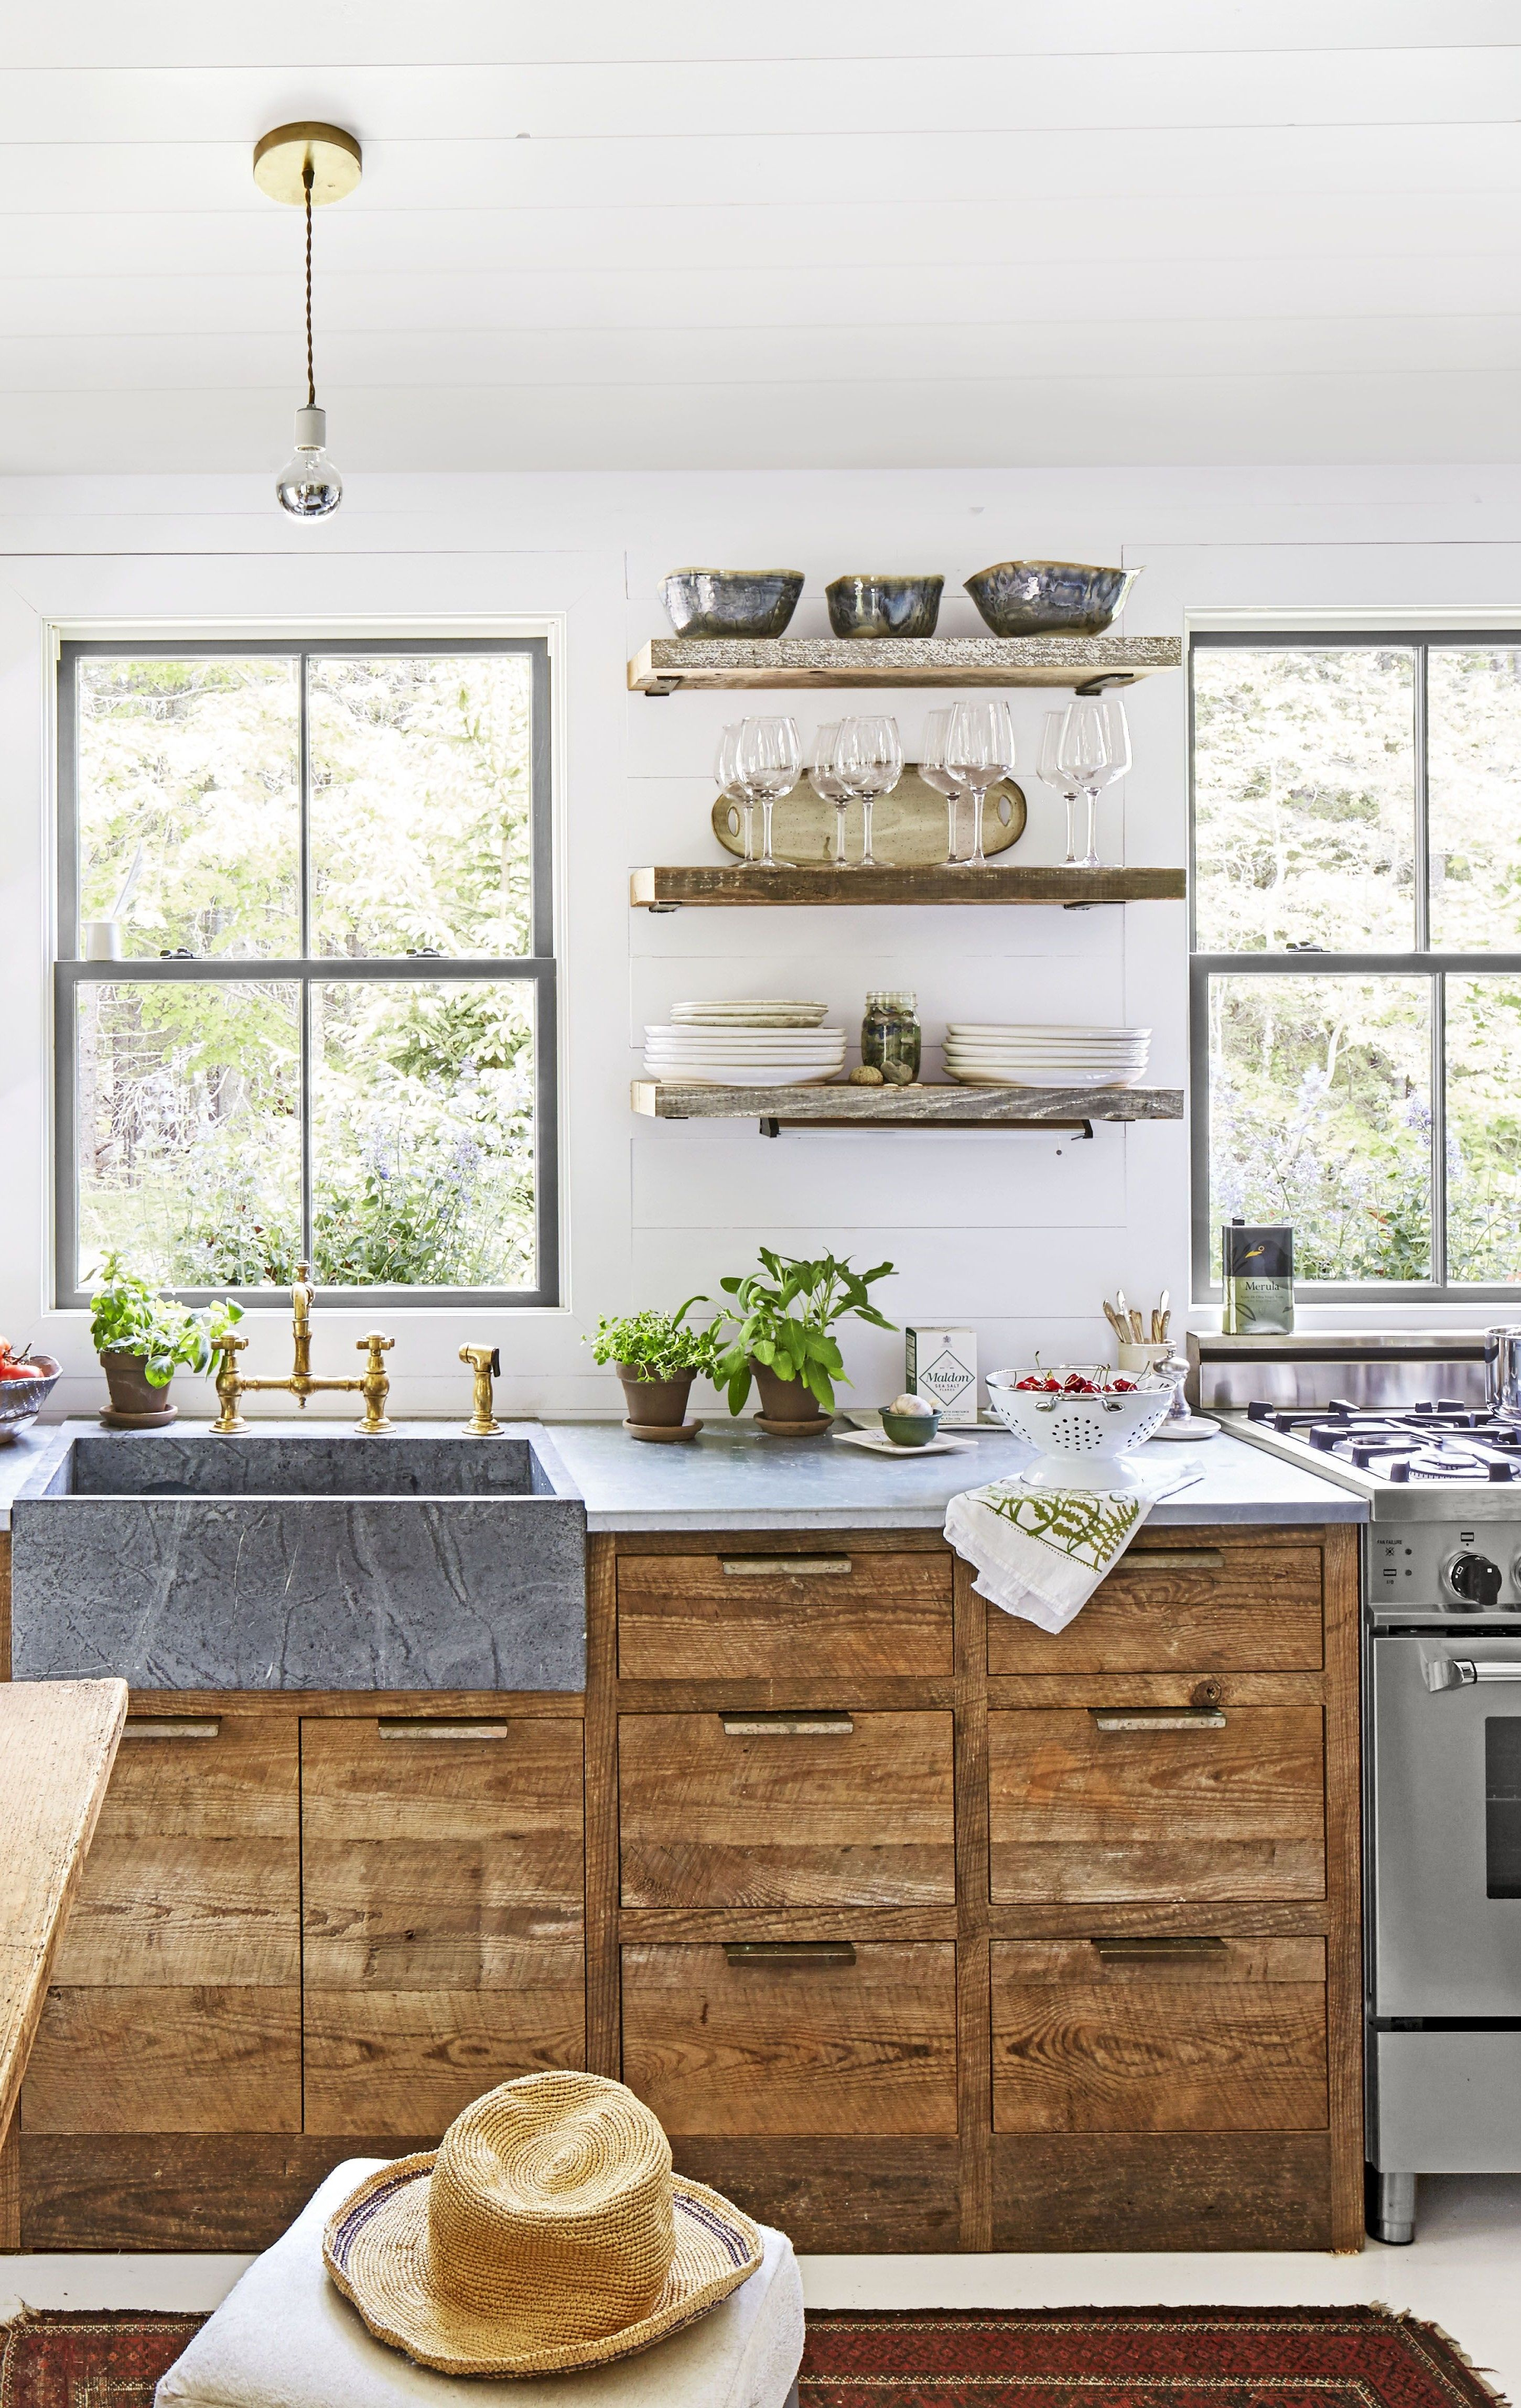 15 Gorgeous Country Kitchens For Your Decorating Inspiration Kitchen Design Plans Kitchen Accessories Decor Kitchen Decor